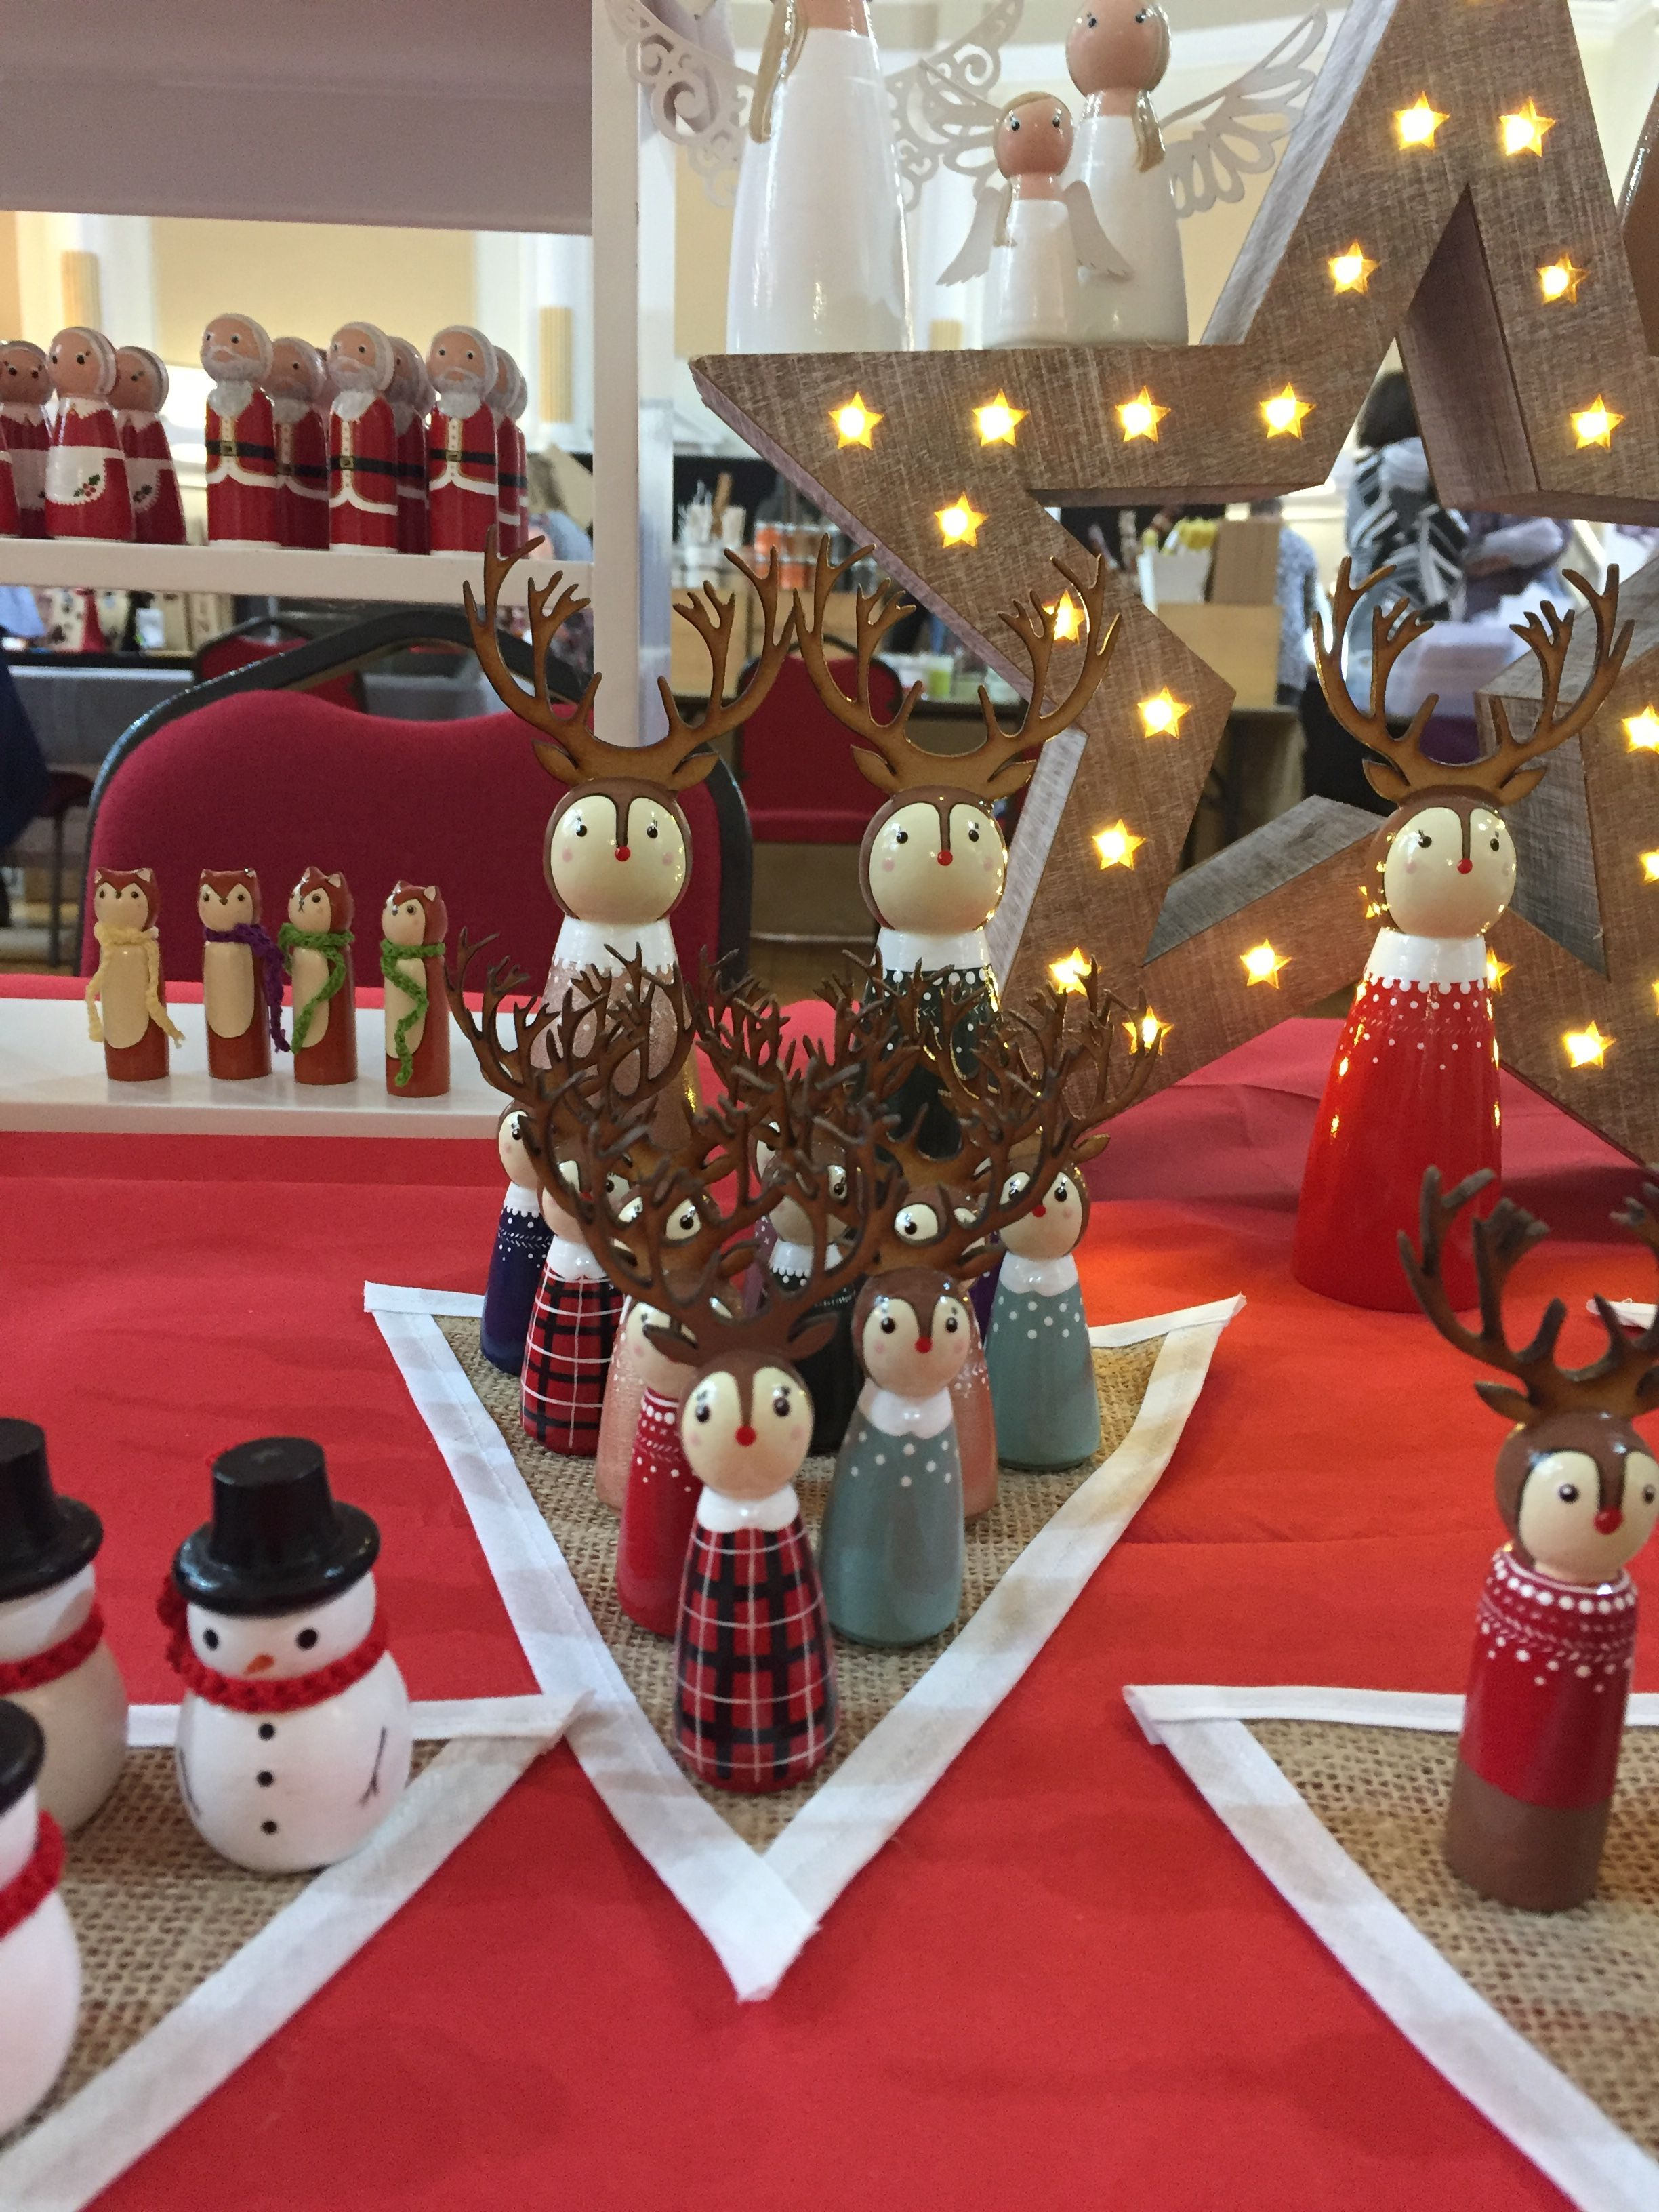 Wooden Reindeer Peg Doll Christmas Decorations By Gabe And Penny